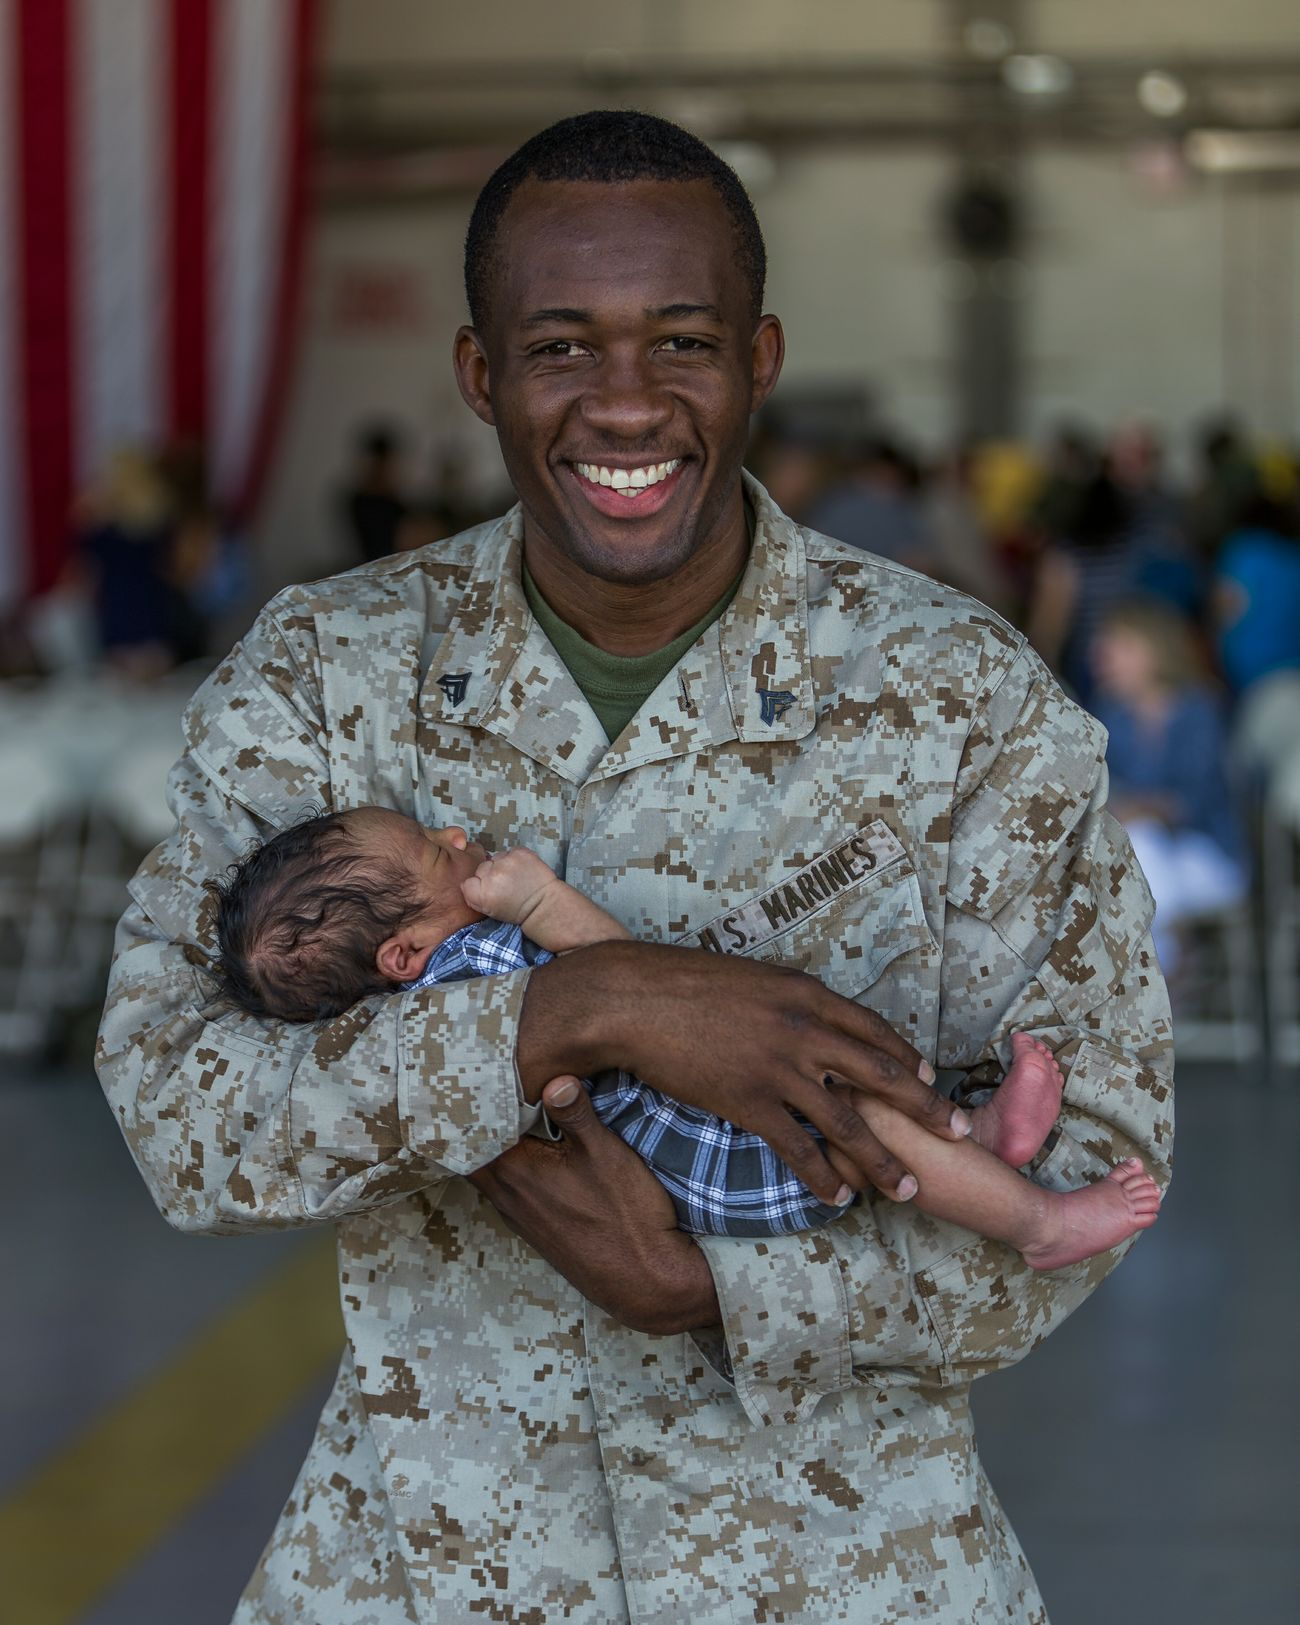 Homecoming Welcome Home USMC Marine Life Marine Baby Babyboy Holding Baby For First Time The Portraitist - 2017 EyeEm Awards